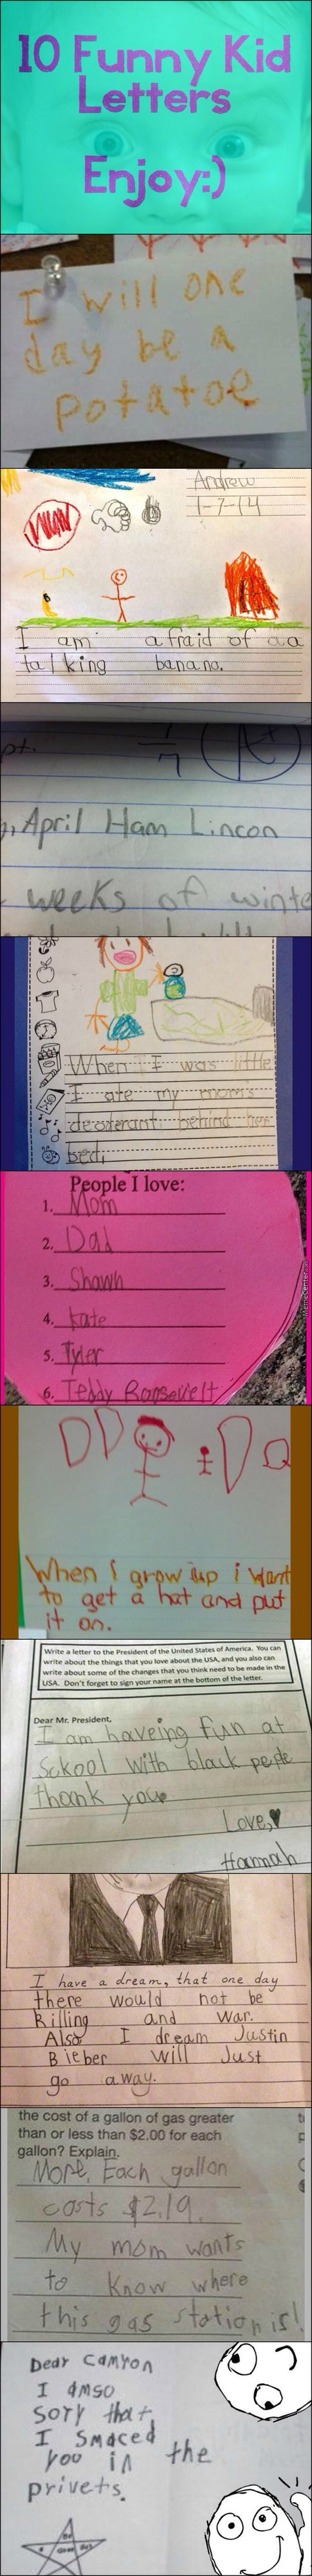 Funny Kid Letters